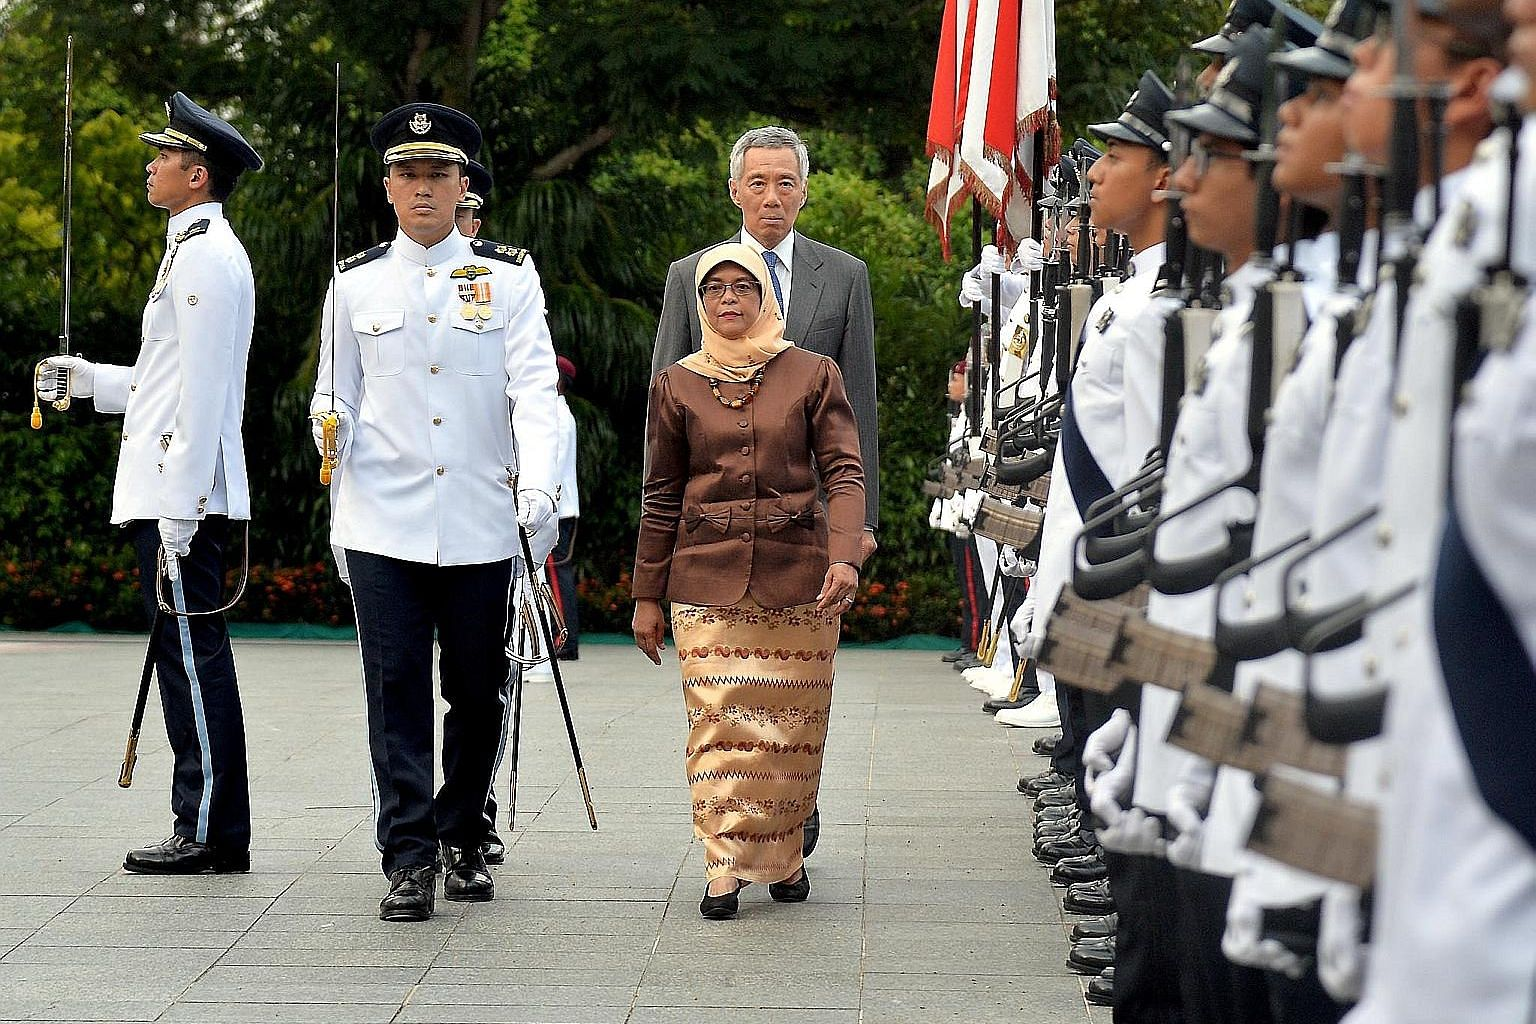 The first session of the 13th Parliament on January 2016 included constitutional changes to the elected presidency. President Halimah Yacob is the first president elected under the new rules.